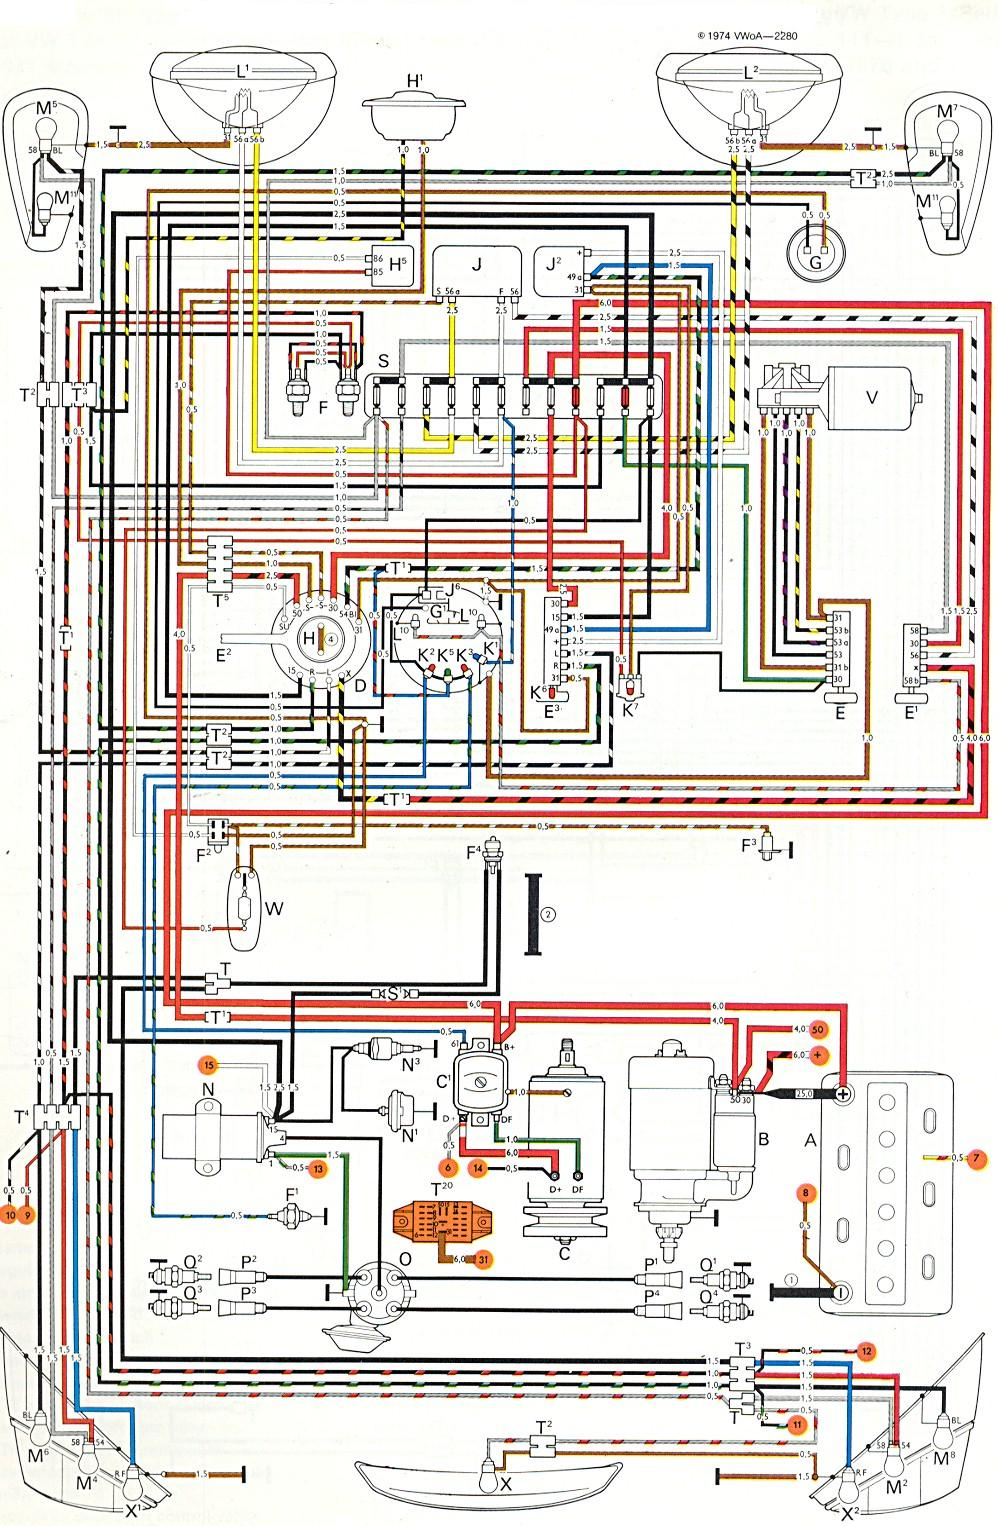 1971 vw ghia wiring wiring diagram progresif